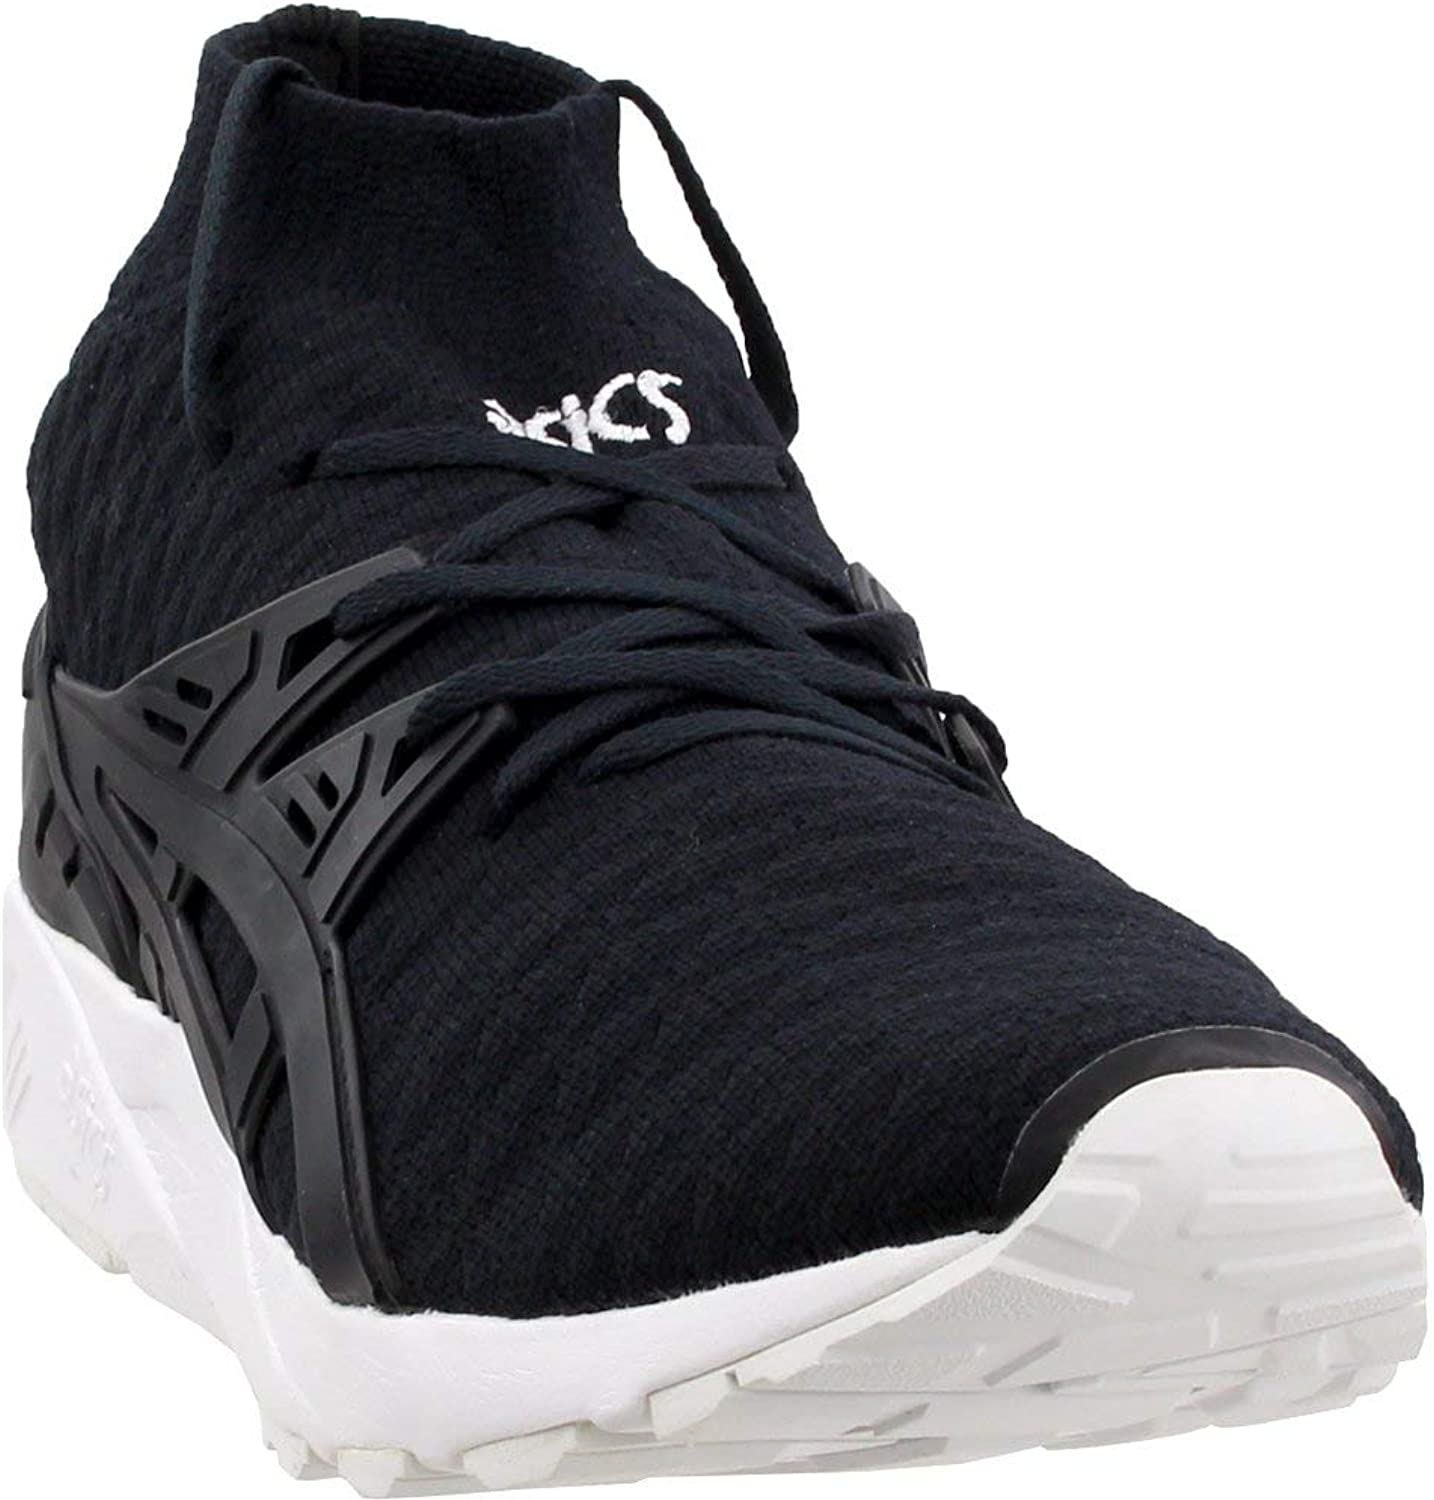 Gel Kayano Trainer Knit Knit Knit MT Mens in Black/Black by Asics, 8.5 B06XPT367B  02e426